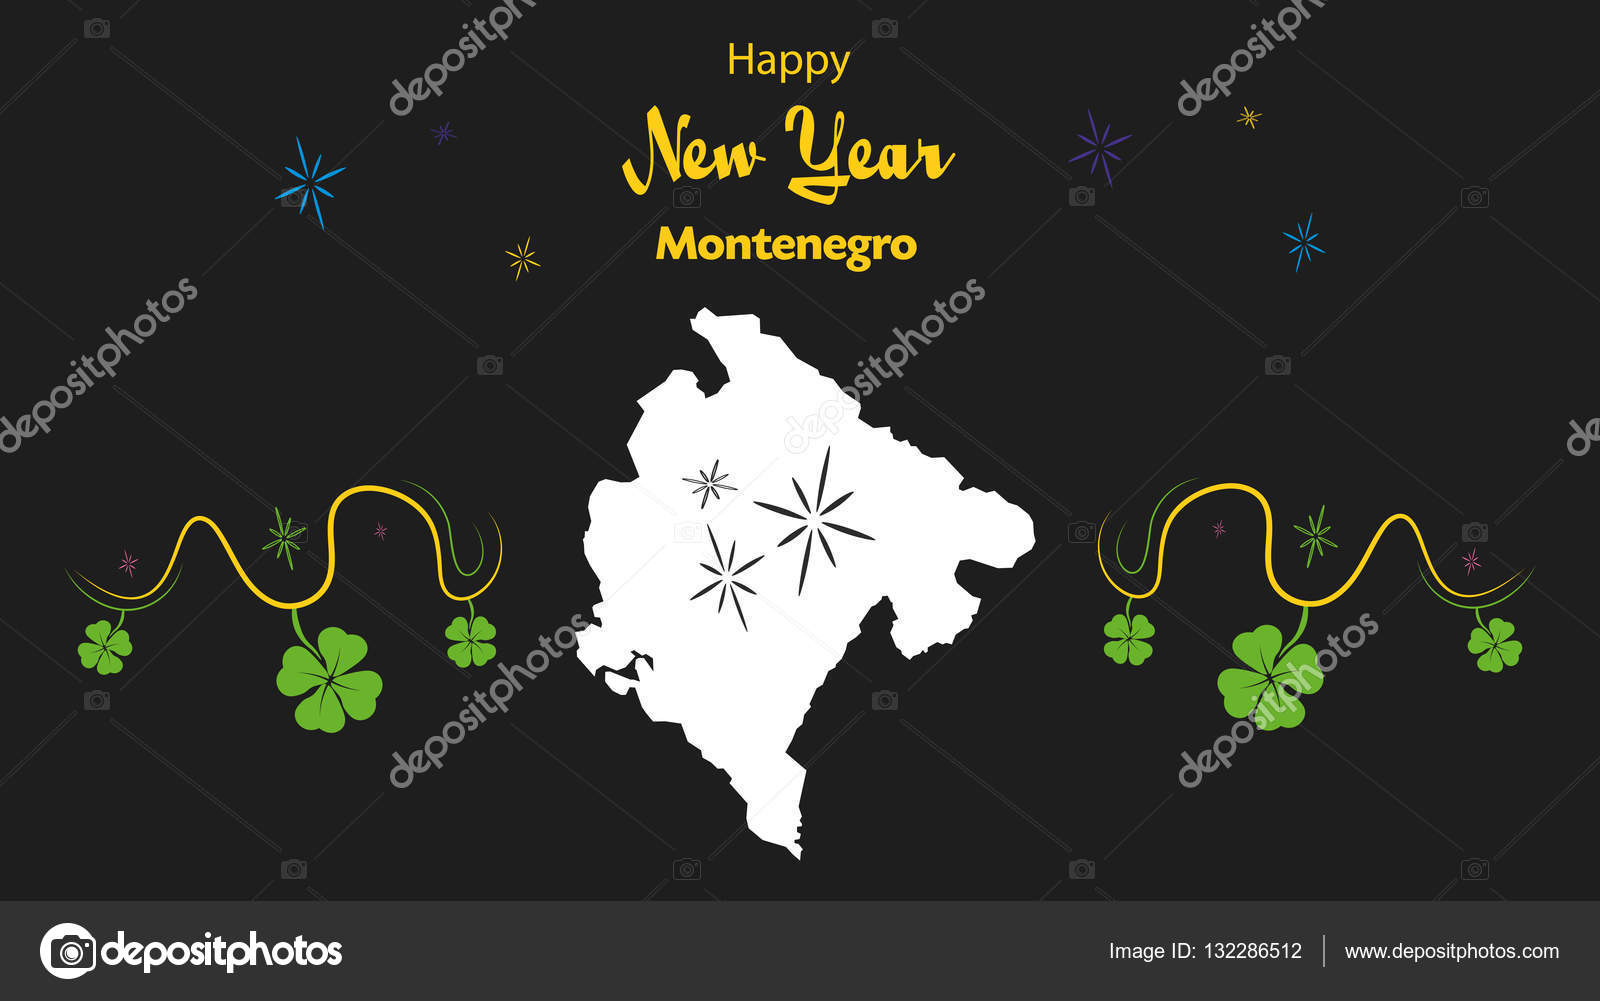 happy new year theme with map of montenegro stock vector